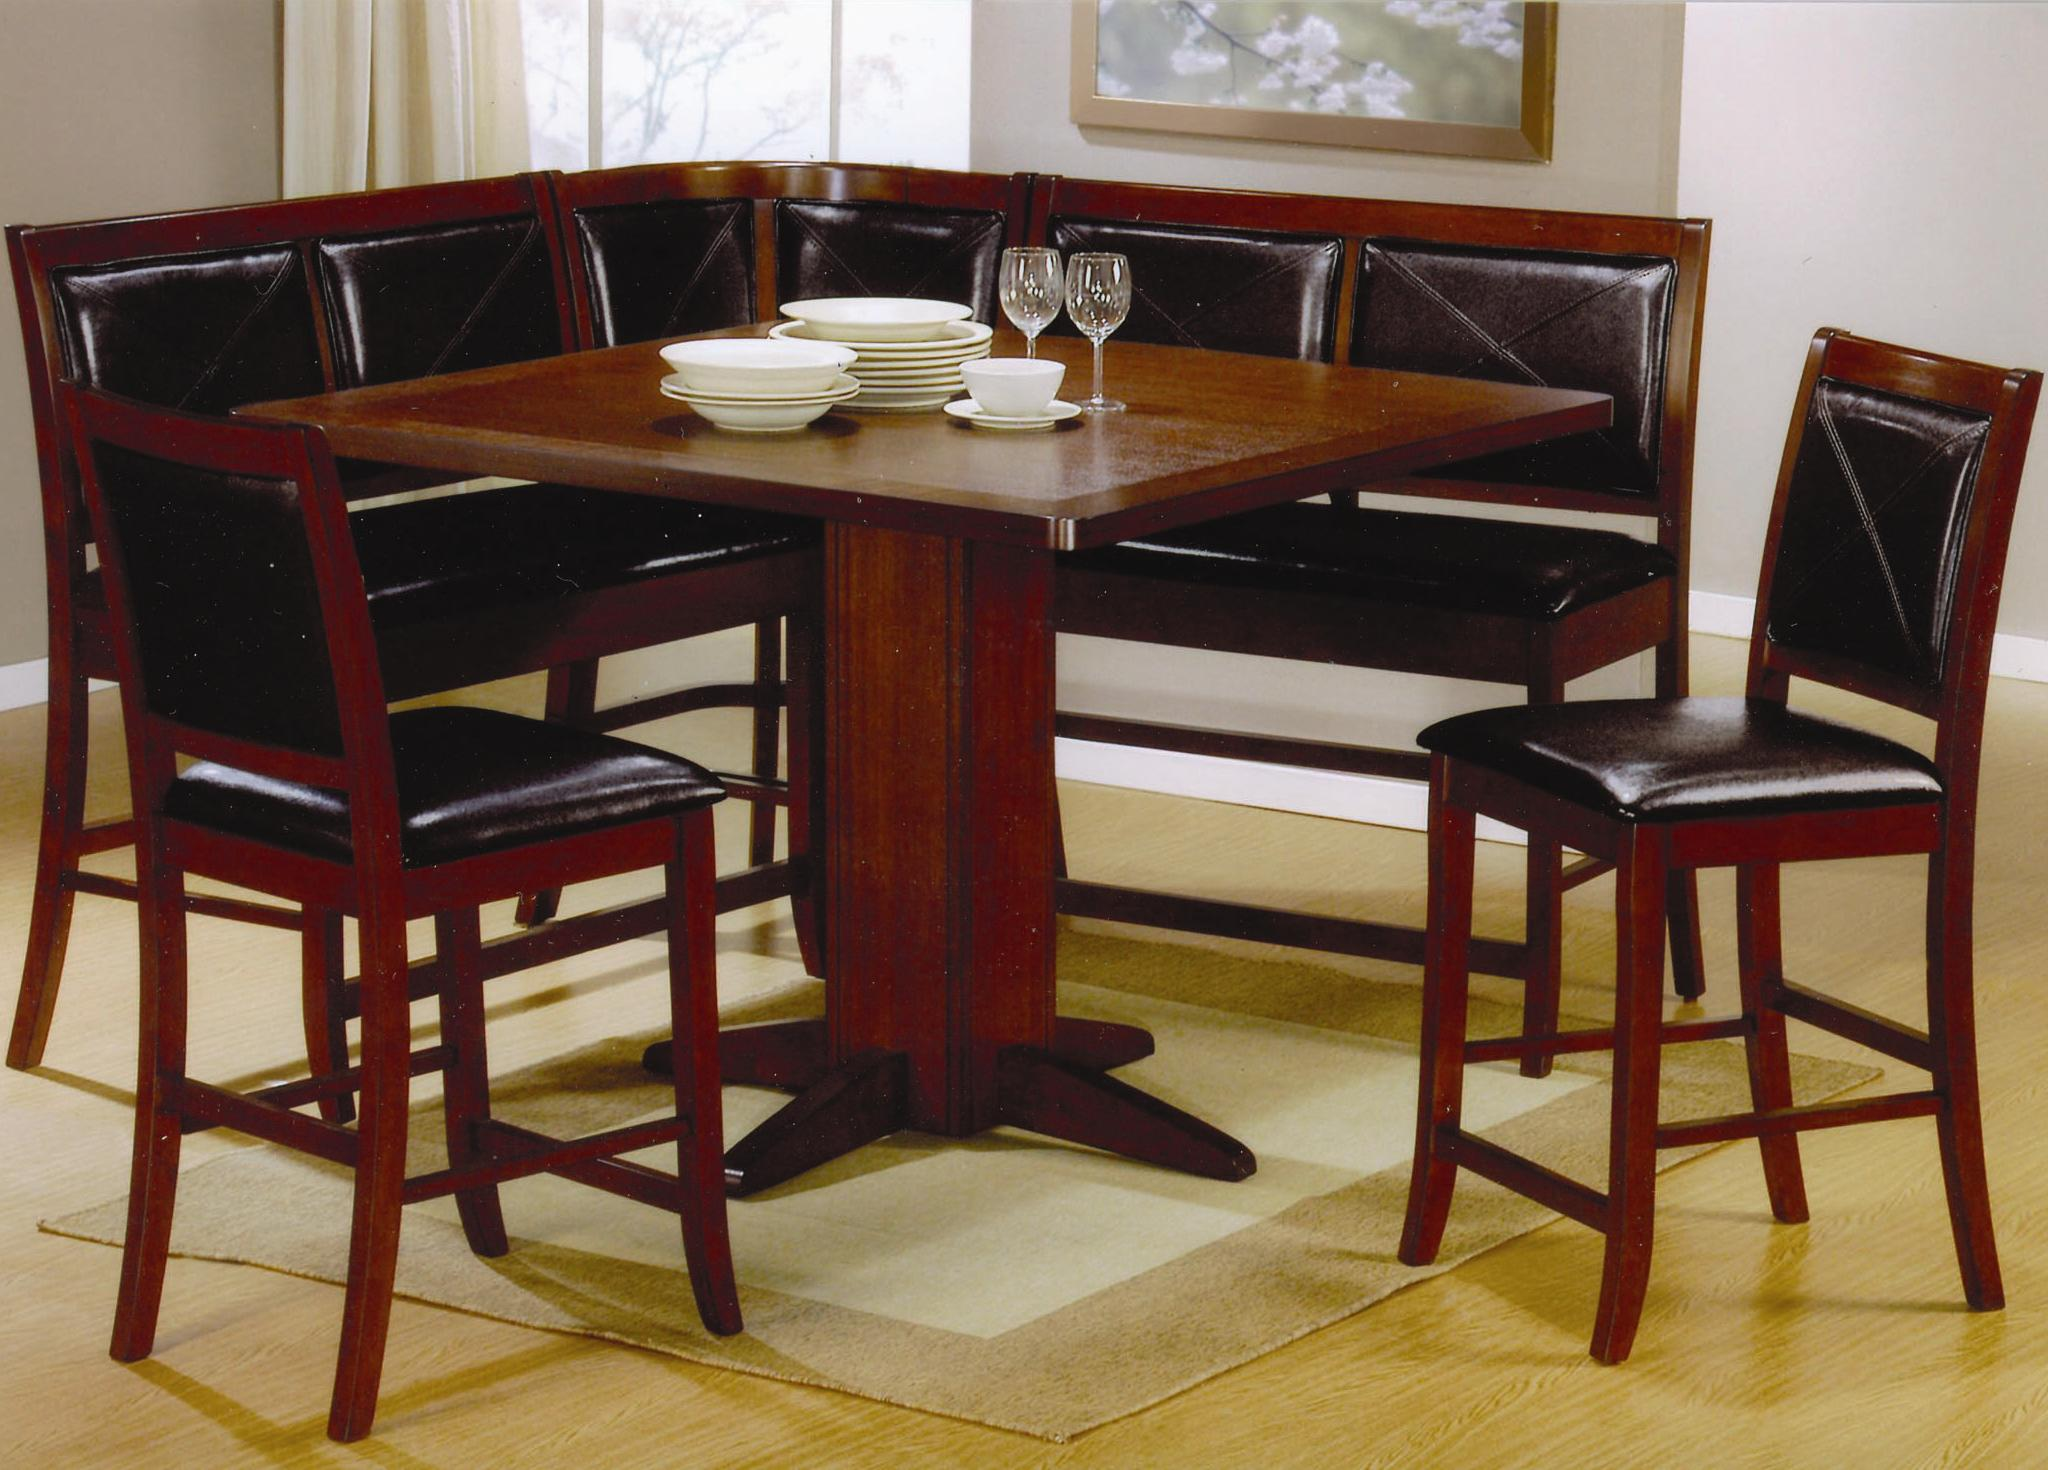 Exceptional Coaster Lancaster 6 Piece Counter Height Dining Set   Item Number:  101791+2x2+